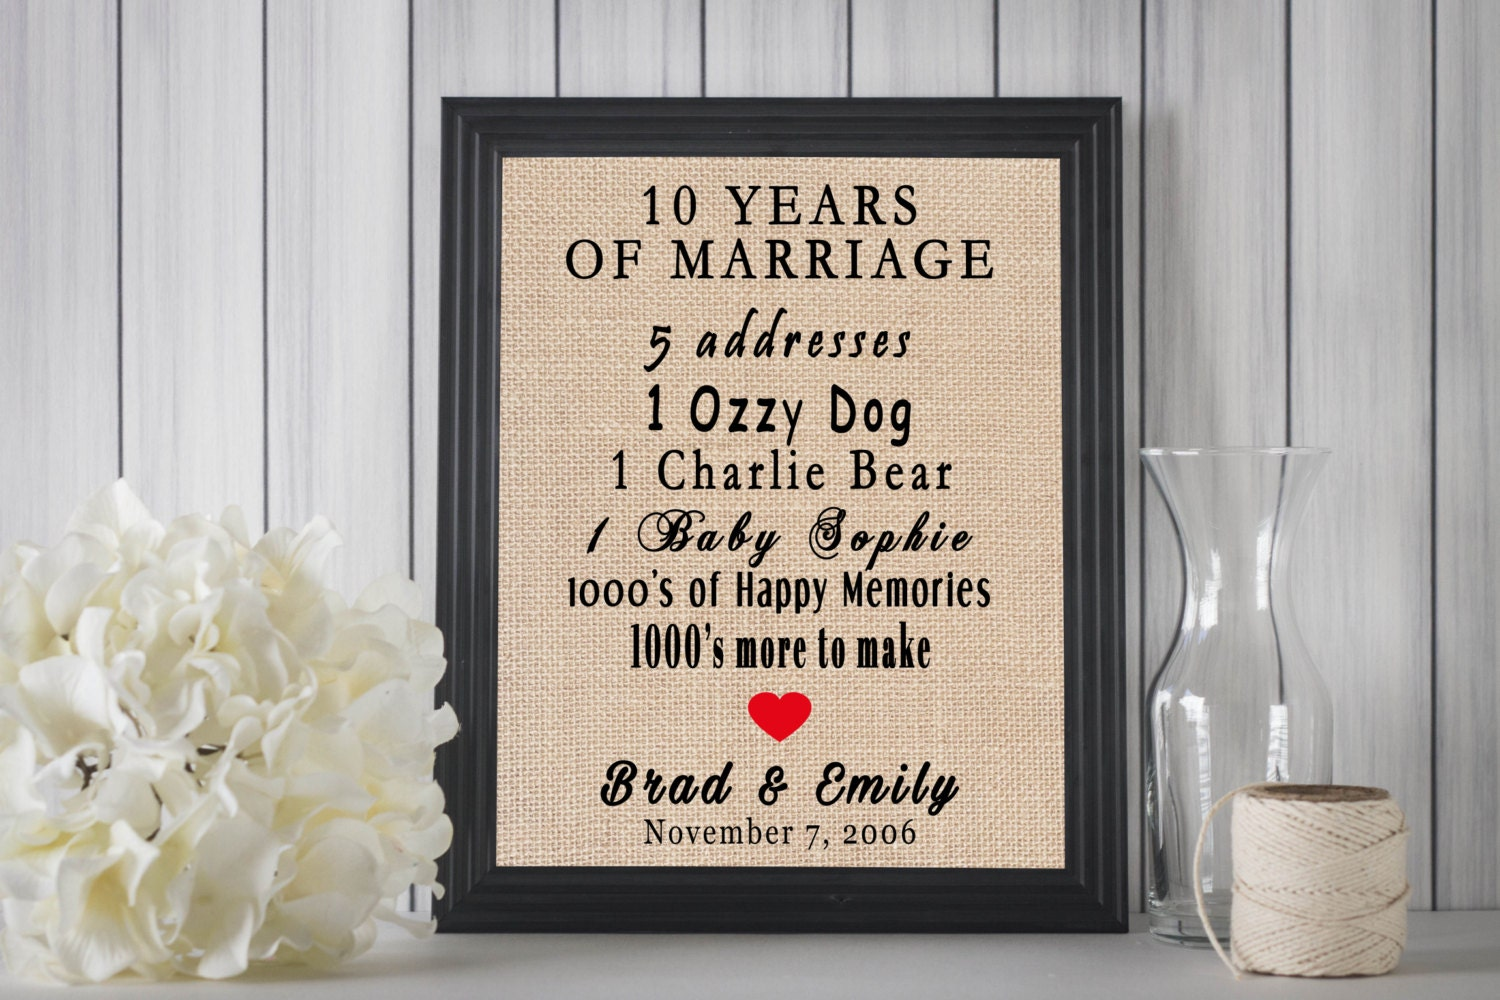 10 Years Wedding Anniversary Gift Ideas: 10 Years Of Marriage // 10 Year Anniversary Sign // 10 Year